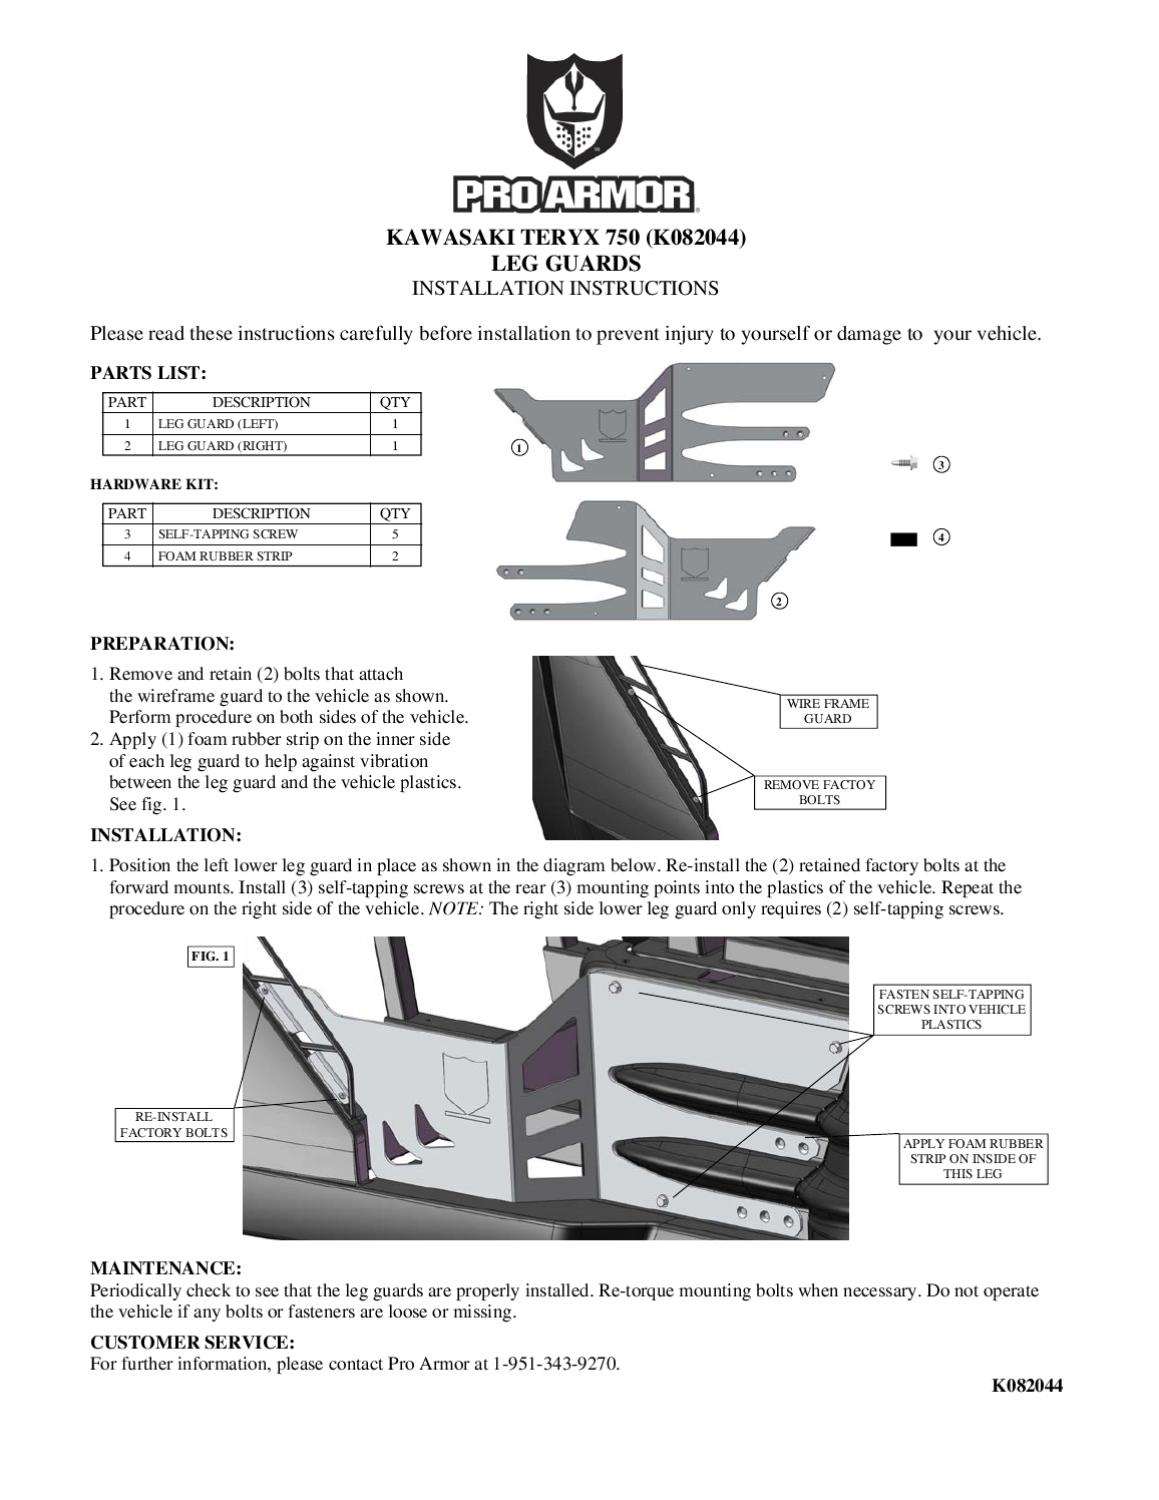 K082044 Teryxlowerlegguards Instructions By Pro Armor Issuu Kawasaki Teryx Wiring Diagram